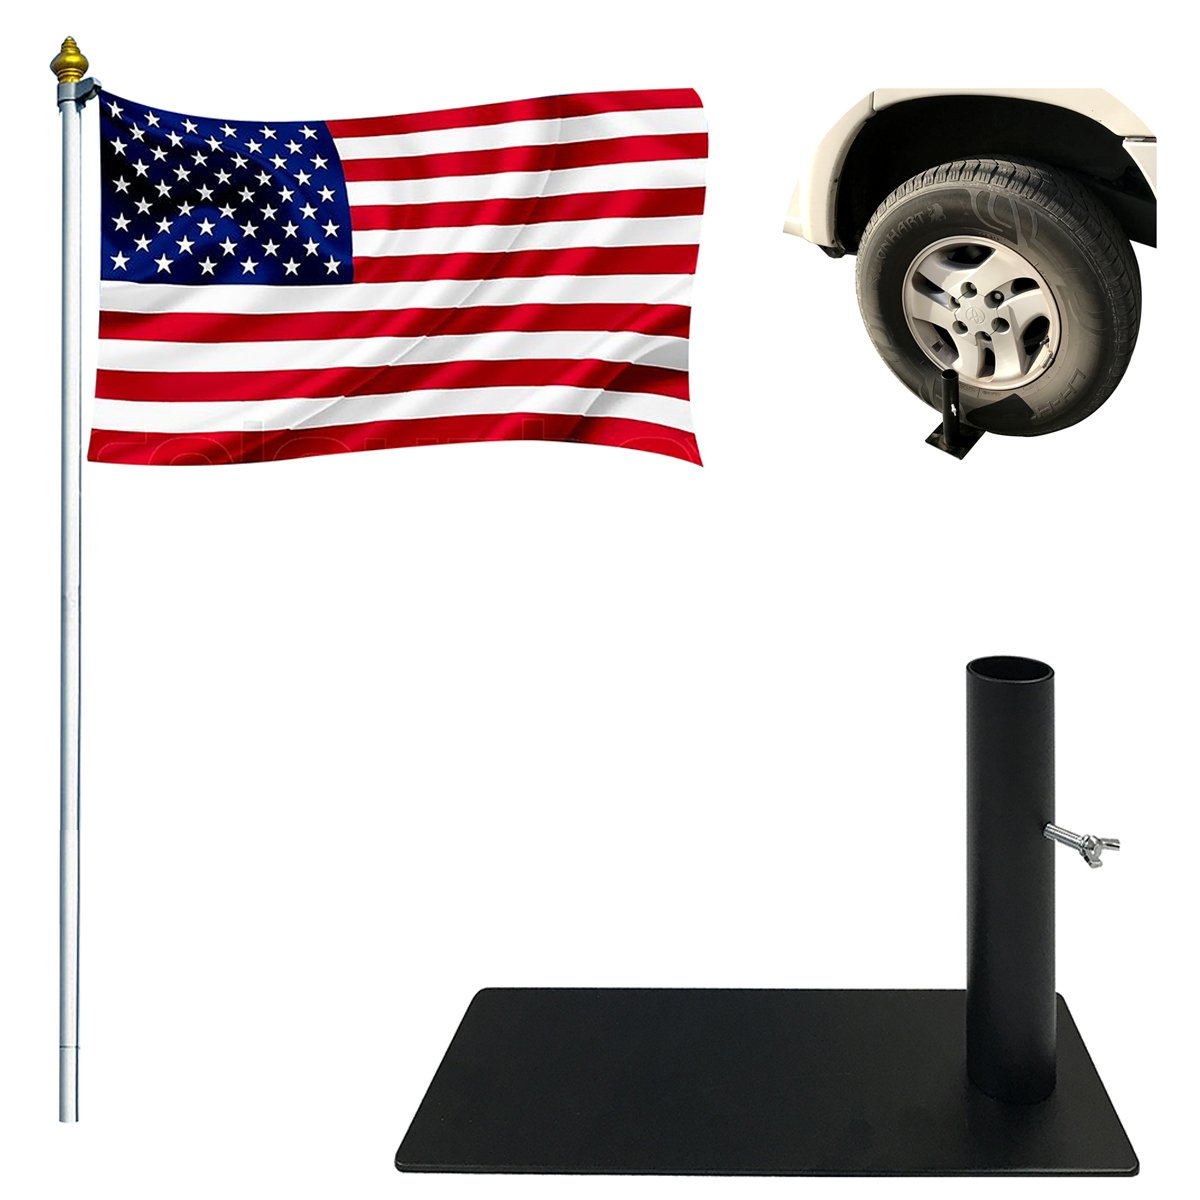 EasyGoProducts Tire Mount Flag Holder – Flag Pole Holder – Tailgate Flag Bracket - Works with Cars, Trucks and RV's